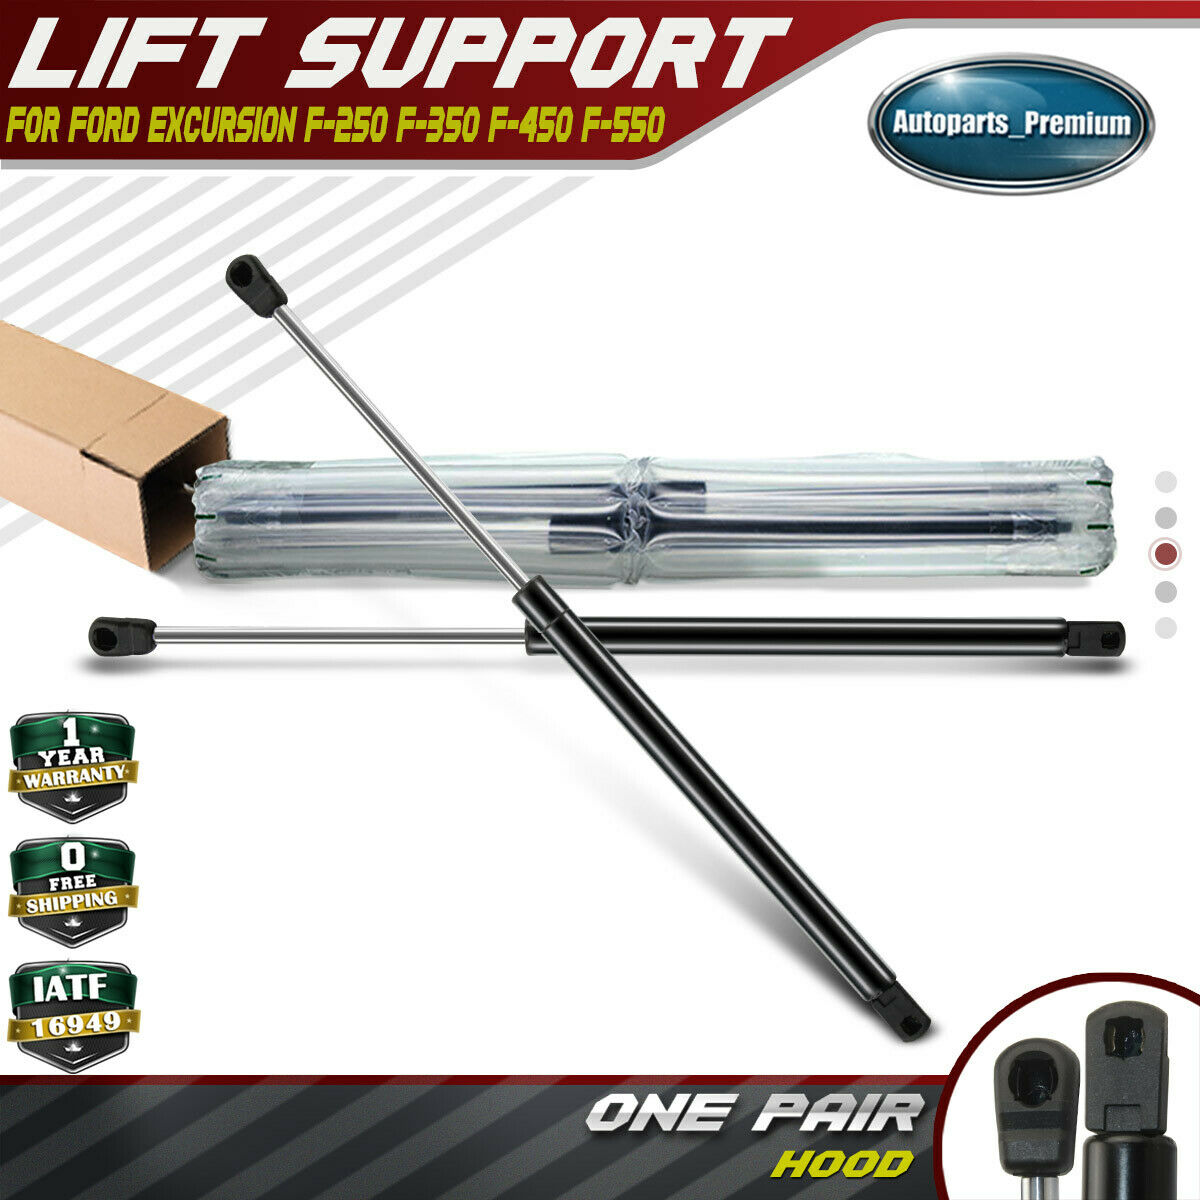 2 Pcs Front Hood Lift Supports Shocks Struts Gas Spring For Ford F-250 F-350 F-450 F-550 Super Duty 4339